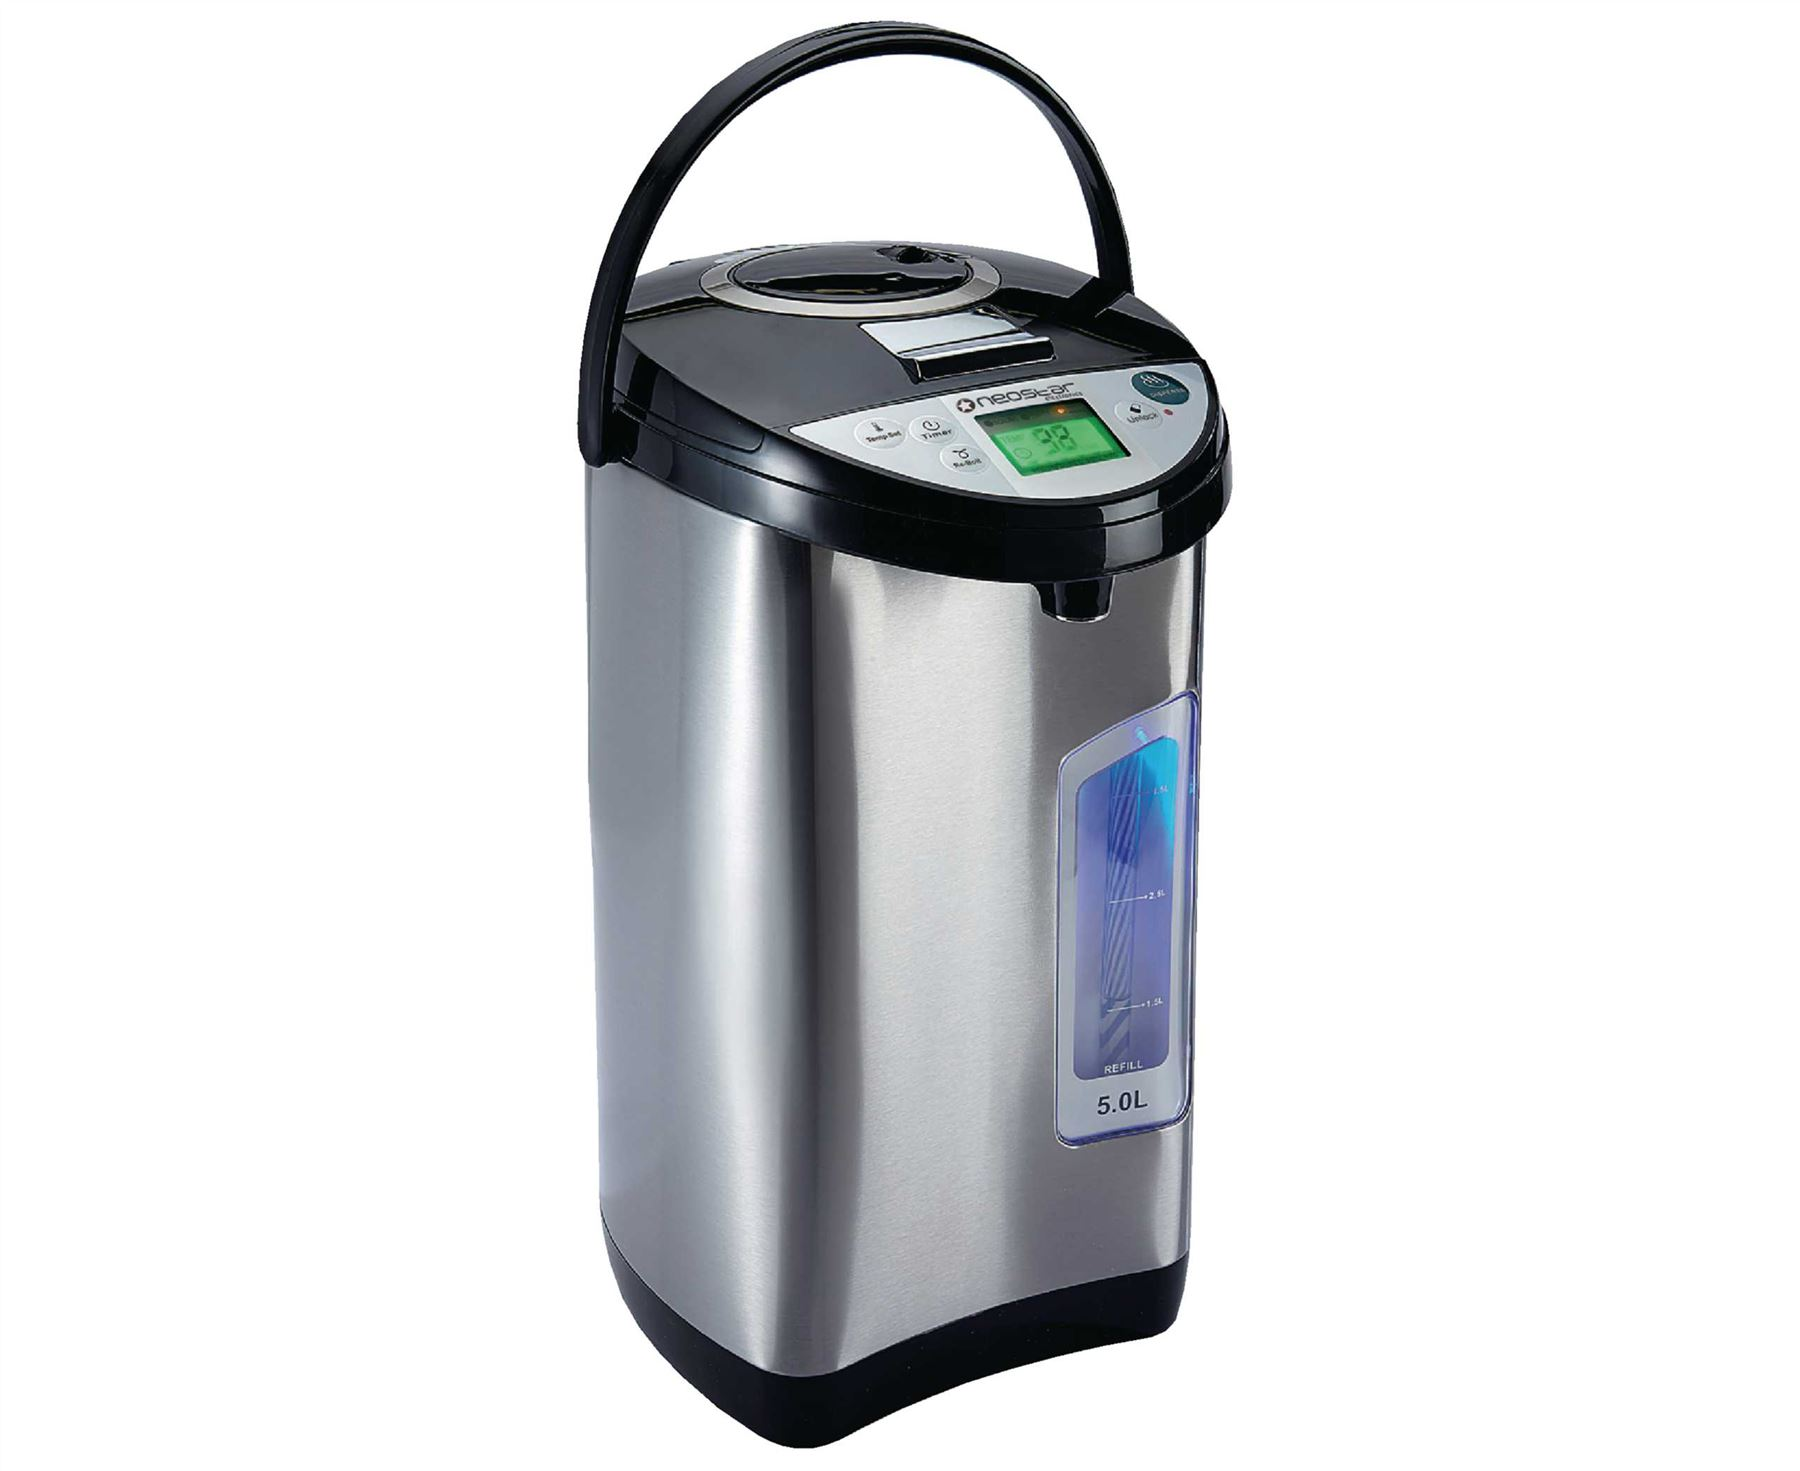 Neostar Perma Therm 5 Litre Instant Thermal Hot Water